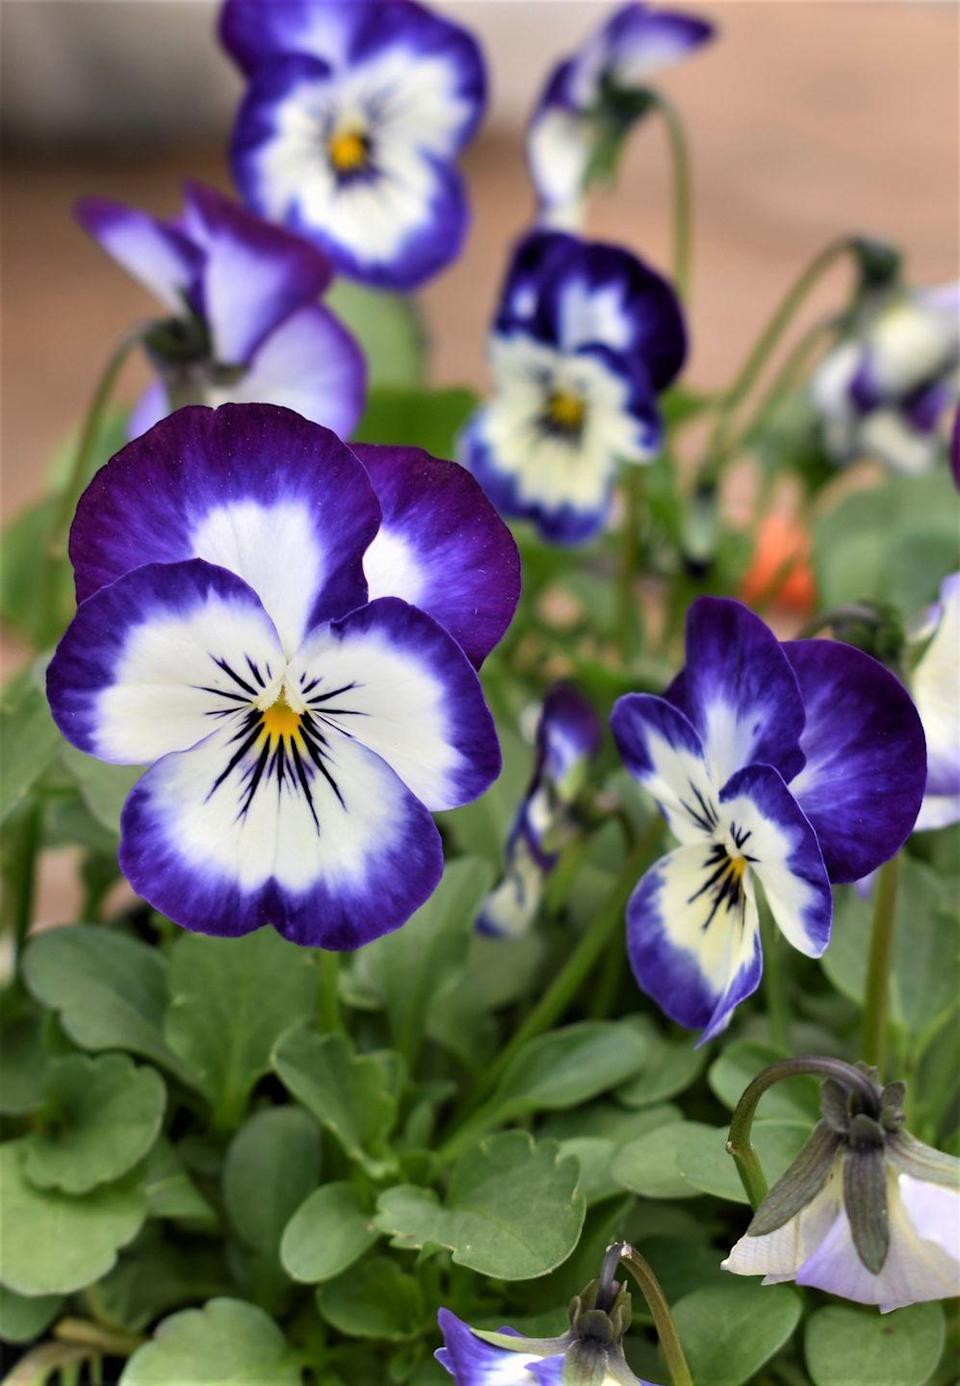 """<p>A cool-weather favourite, pansies are great for kids thanks to their abundance of head-turning colours. Ideal for growing in patio containers, borders and pots, your kids will love slipping on their <a href=""""https://www.housebeautiful.com/uk/garden/g31246169/gardening-gloves/"""" rel=""""nofollow noopener"""" target=""""_blank"""" data-ylk=""""slk:gardening gloves"""" class=""""link rapid-noclick-resp"""">gardening gloves</a> and getting involved. </p><p><a class=""""link rapid-noclick-resp"""" href=""""https://go.redirectingat.com?id=127X1599956&url=https%3A%2F%2Fwww.thompson-morgan.com%2Fp%2Fviola-autumn-jewels-mixed-garden-ready%2FT62669TM&sref=https%3A%2F%2Fwww.housebeautiful.com%2Fuk%2Fgarden%2Fplants%2Fg36446066%2Fplants-for-kids%2F"""" rel=""""nofollow noopener"""" target=""""_blank"""" data-ylk=""""slk:BUY NOW VIA THOMPSON & MORGAN"""">BUY NOW VIA THOMPSON & MORGAN</a> </p>"""